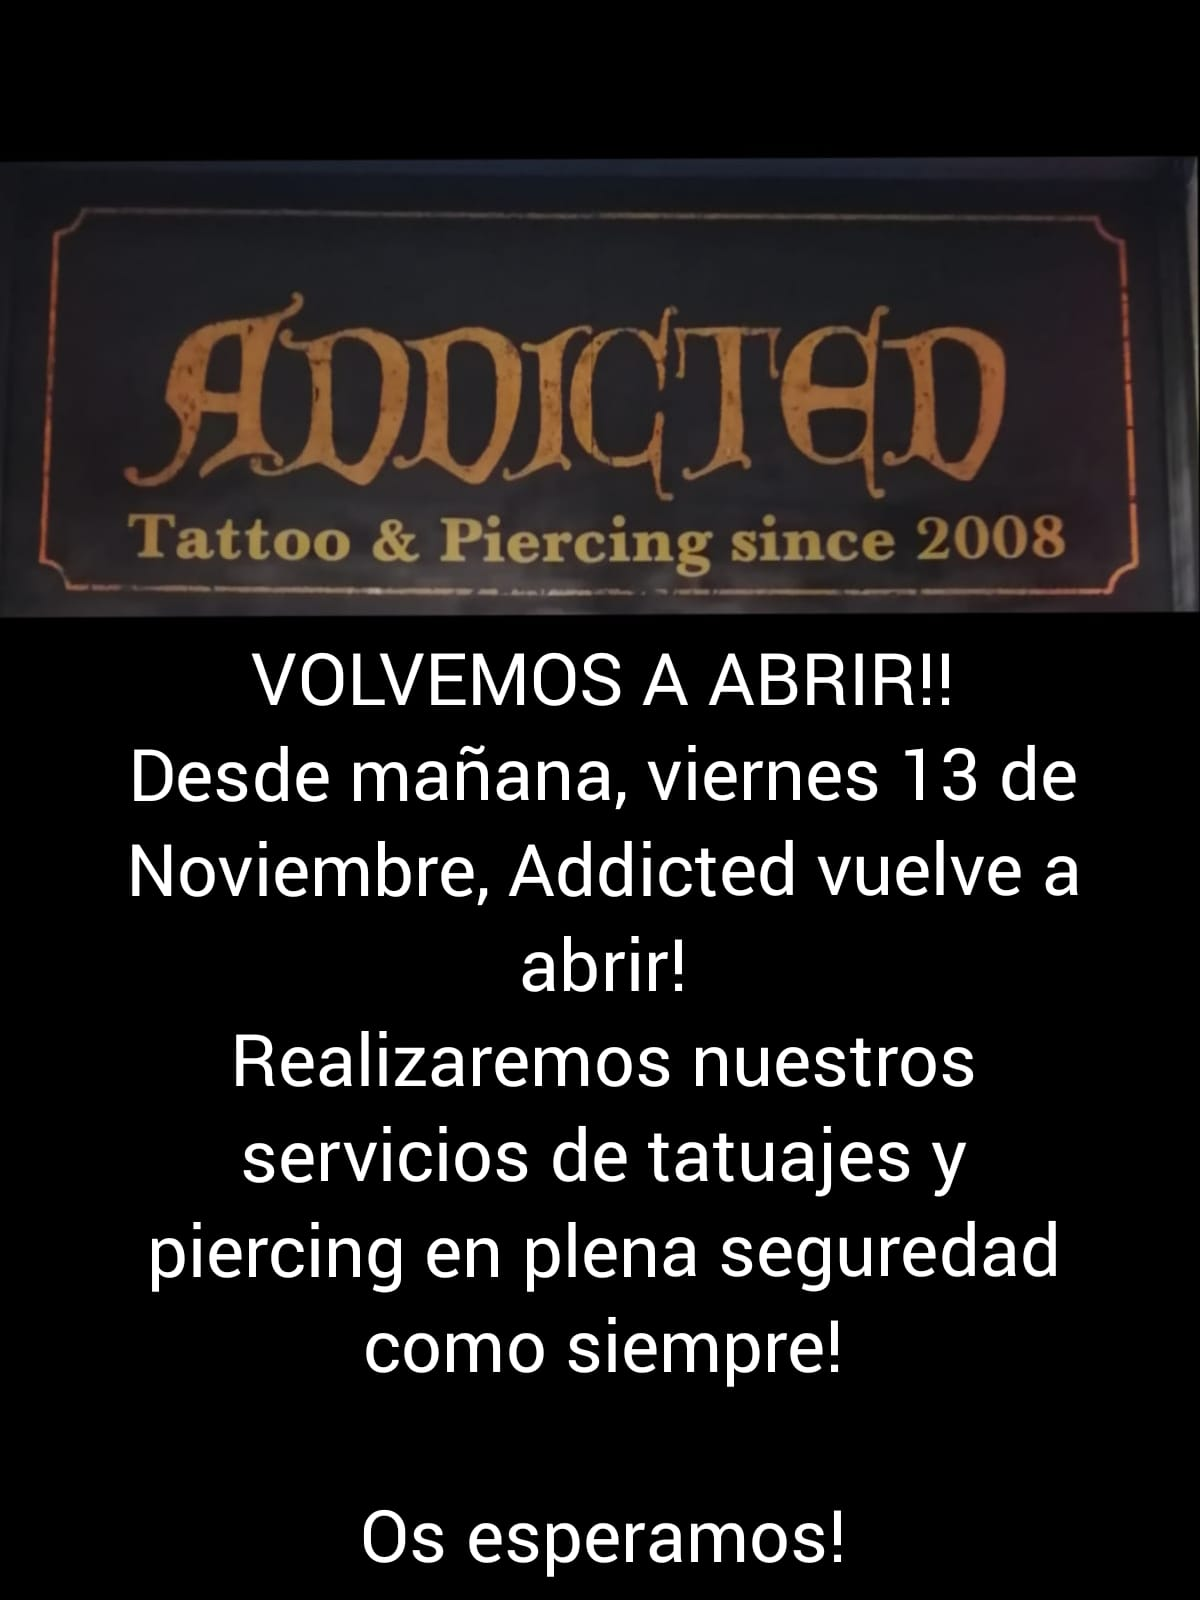 Addicted Tattoo reopens its doors!